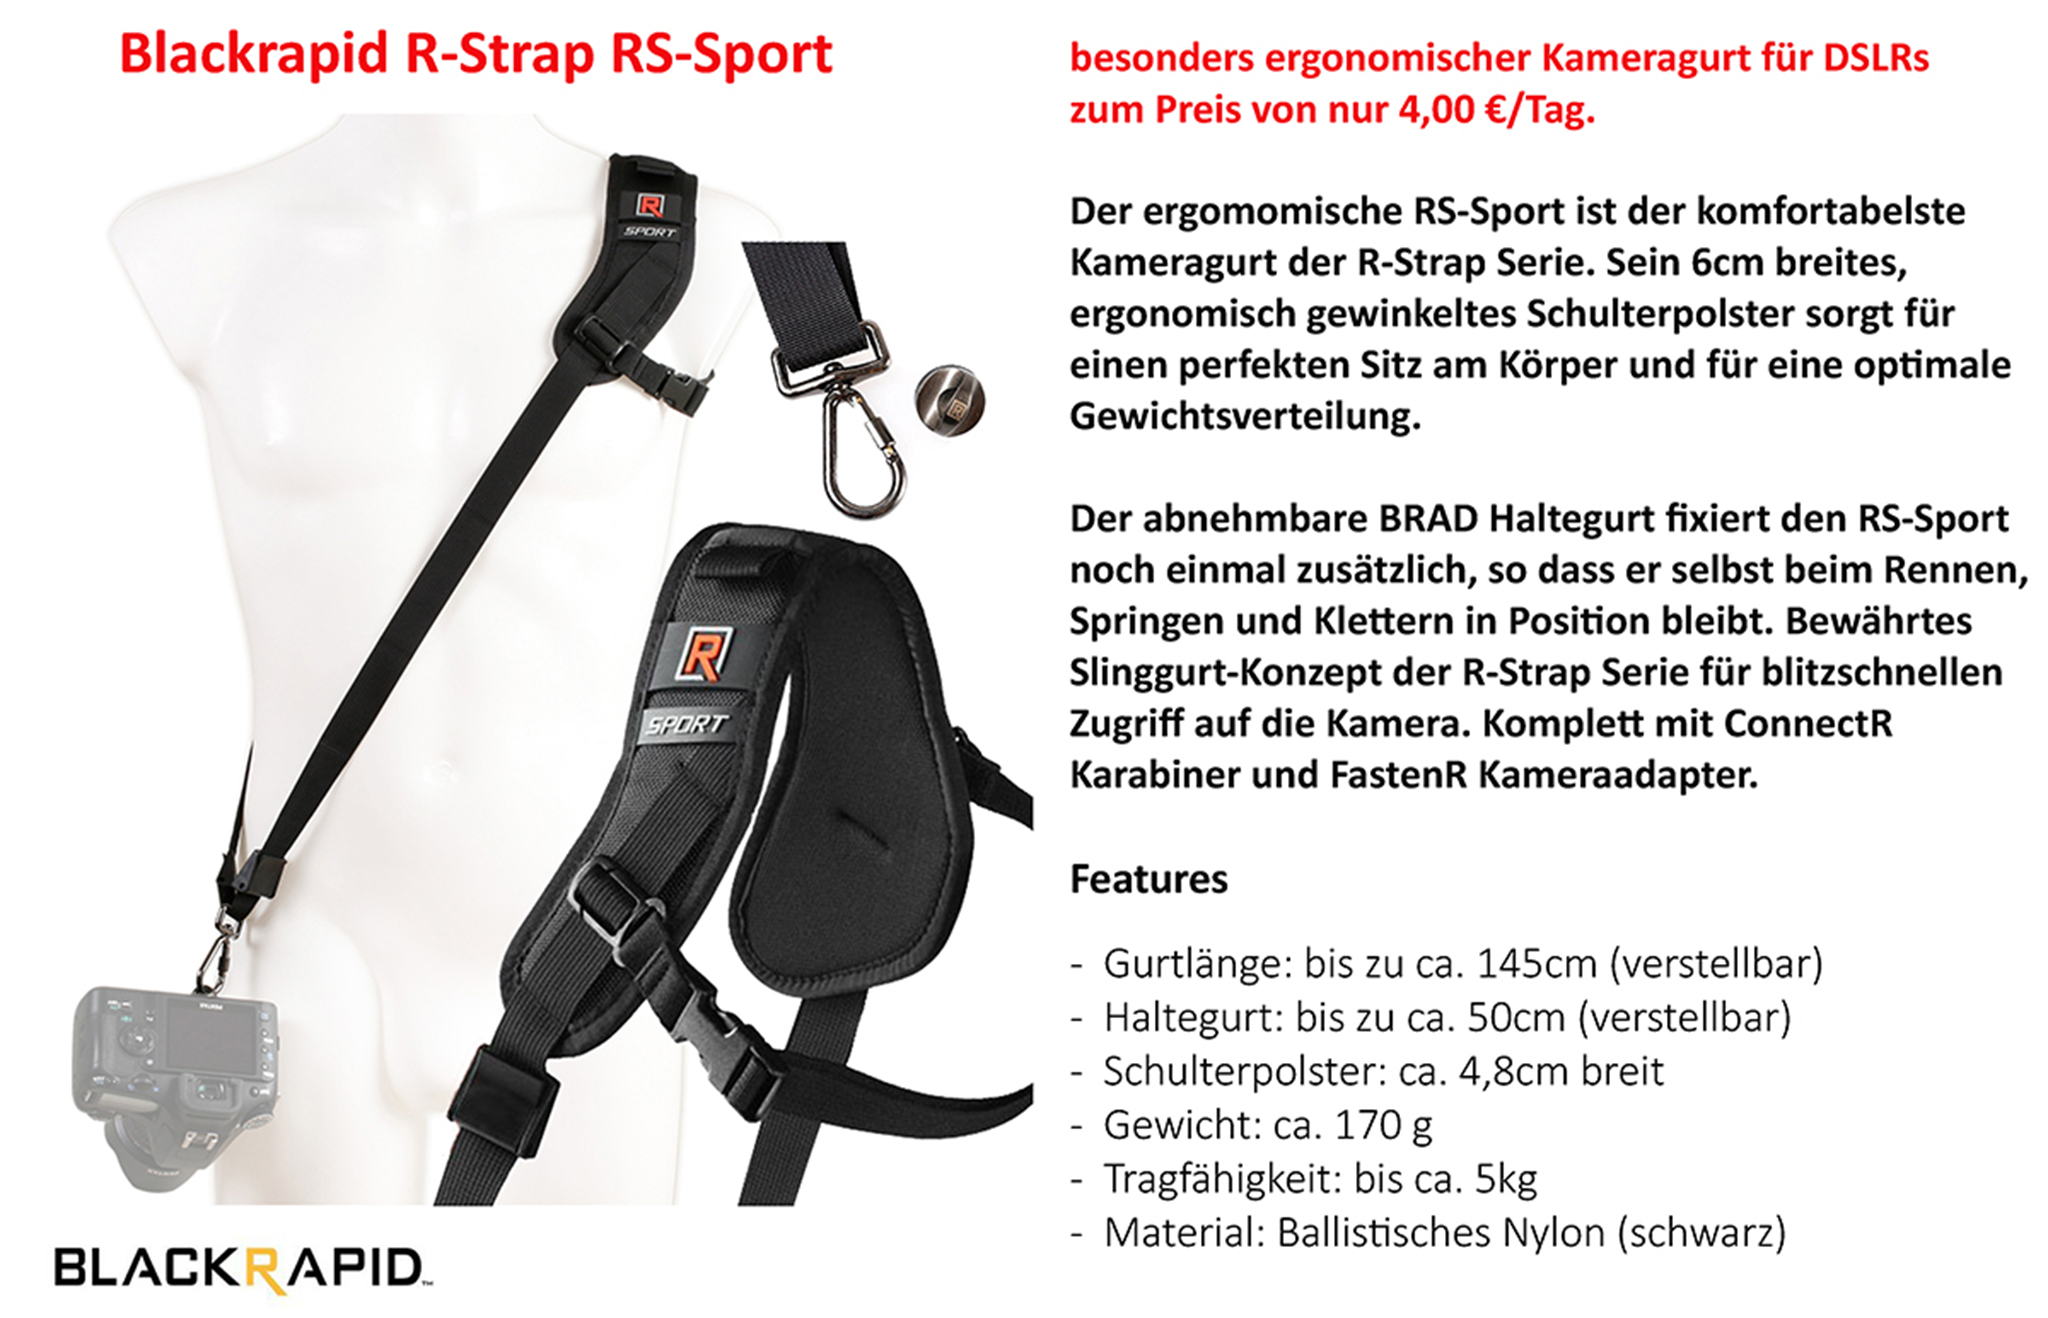 Blackrapid R-Strap RS-Sport